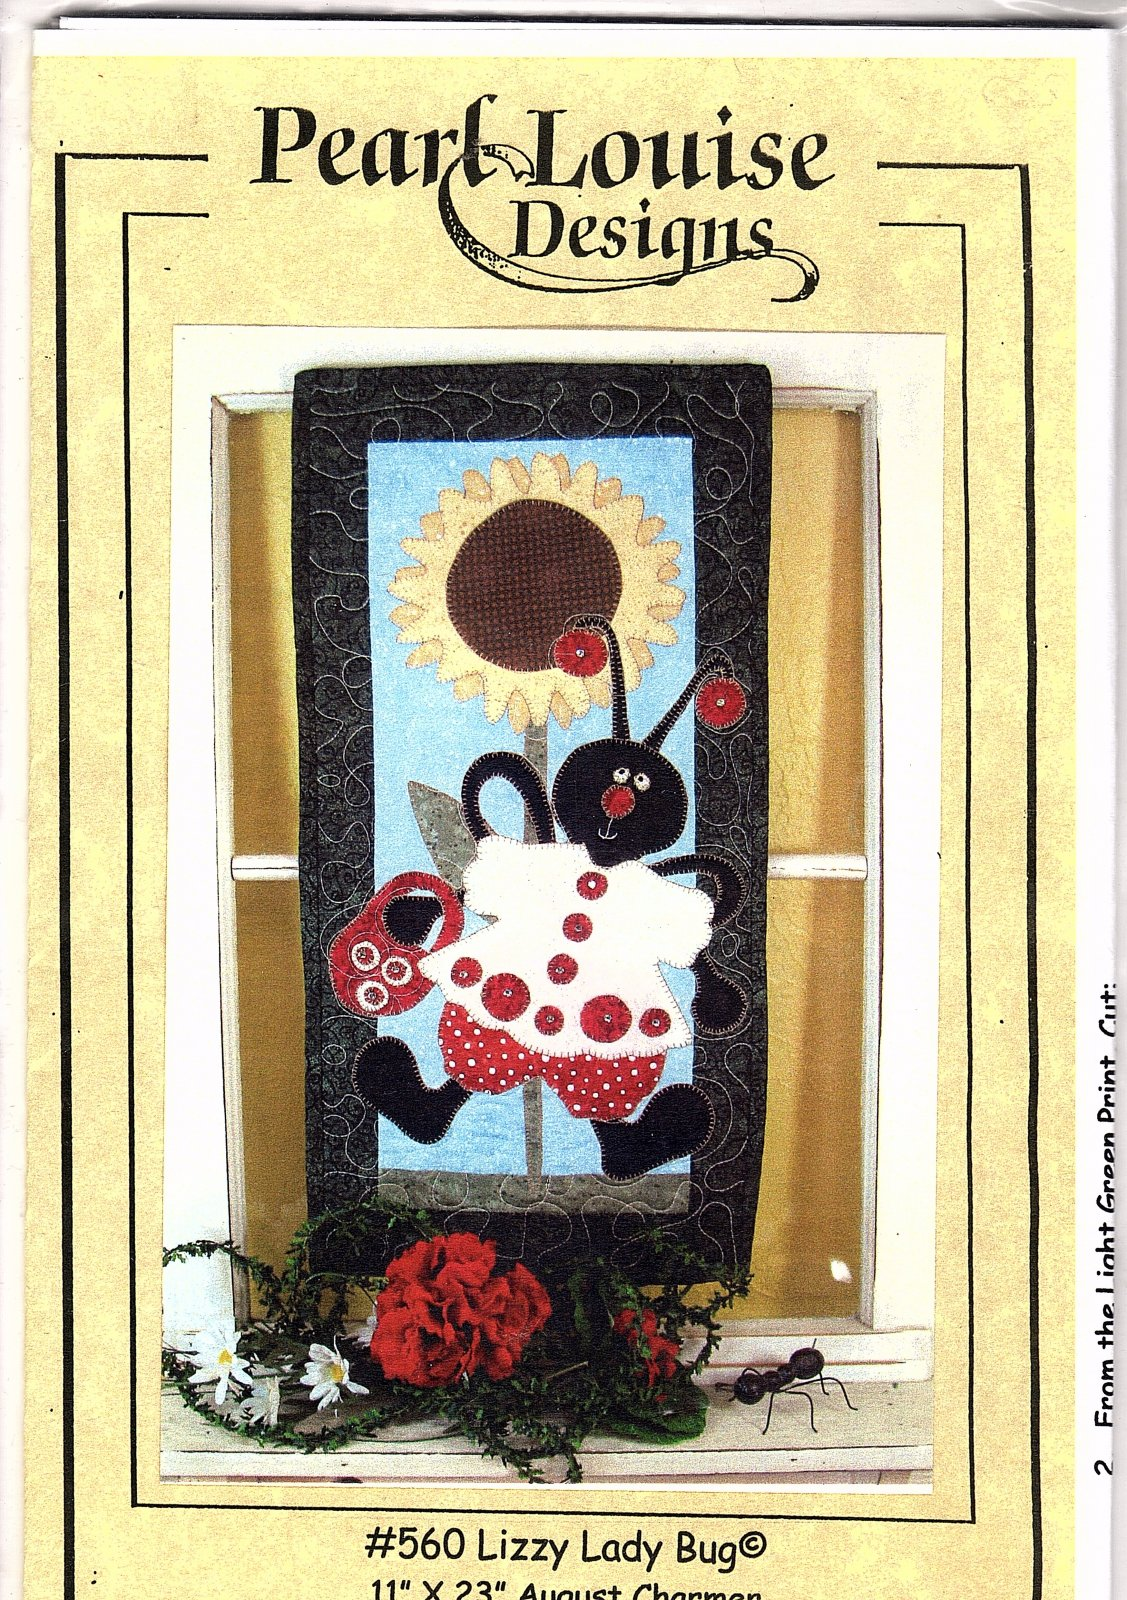 Lizzy Ladybug #560 Pearl Louise Designs - 11 x 23 August Charmer